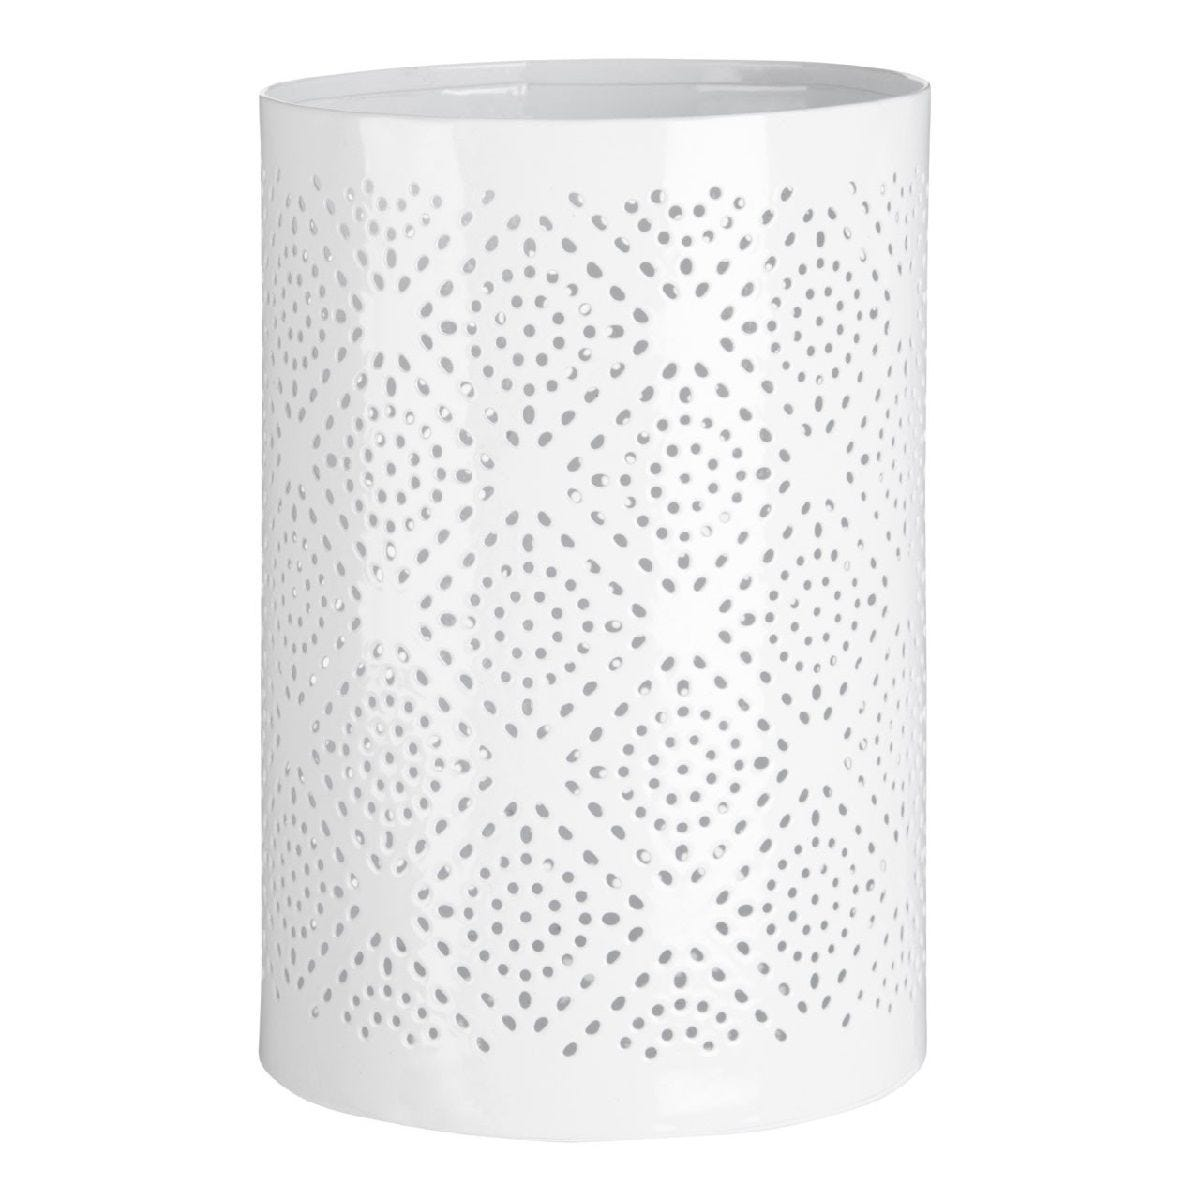 Premier Housewares Complements Large Hurricane Candle Holder - White Finish